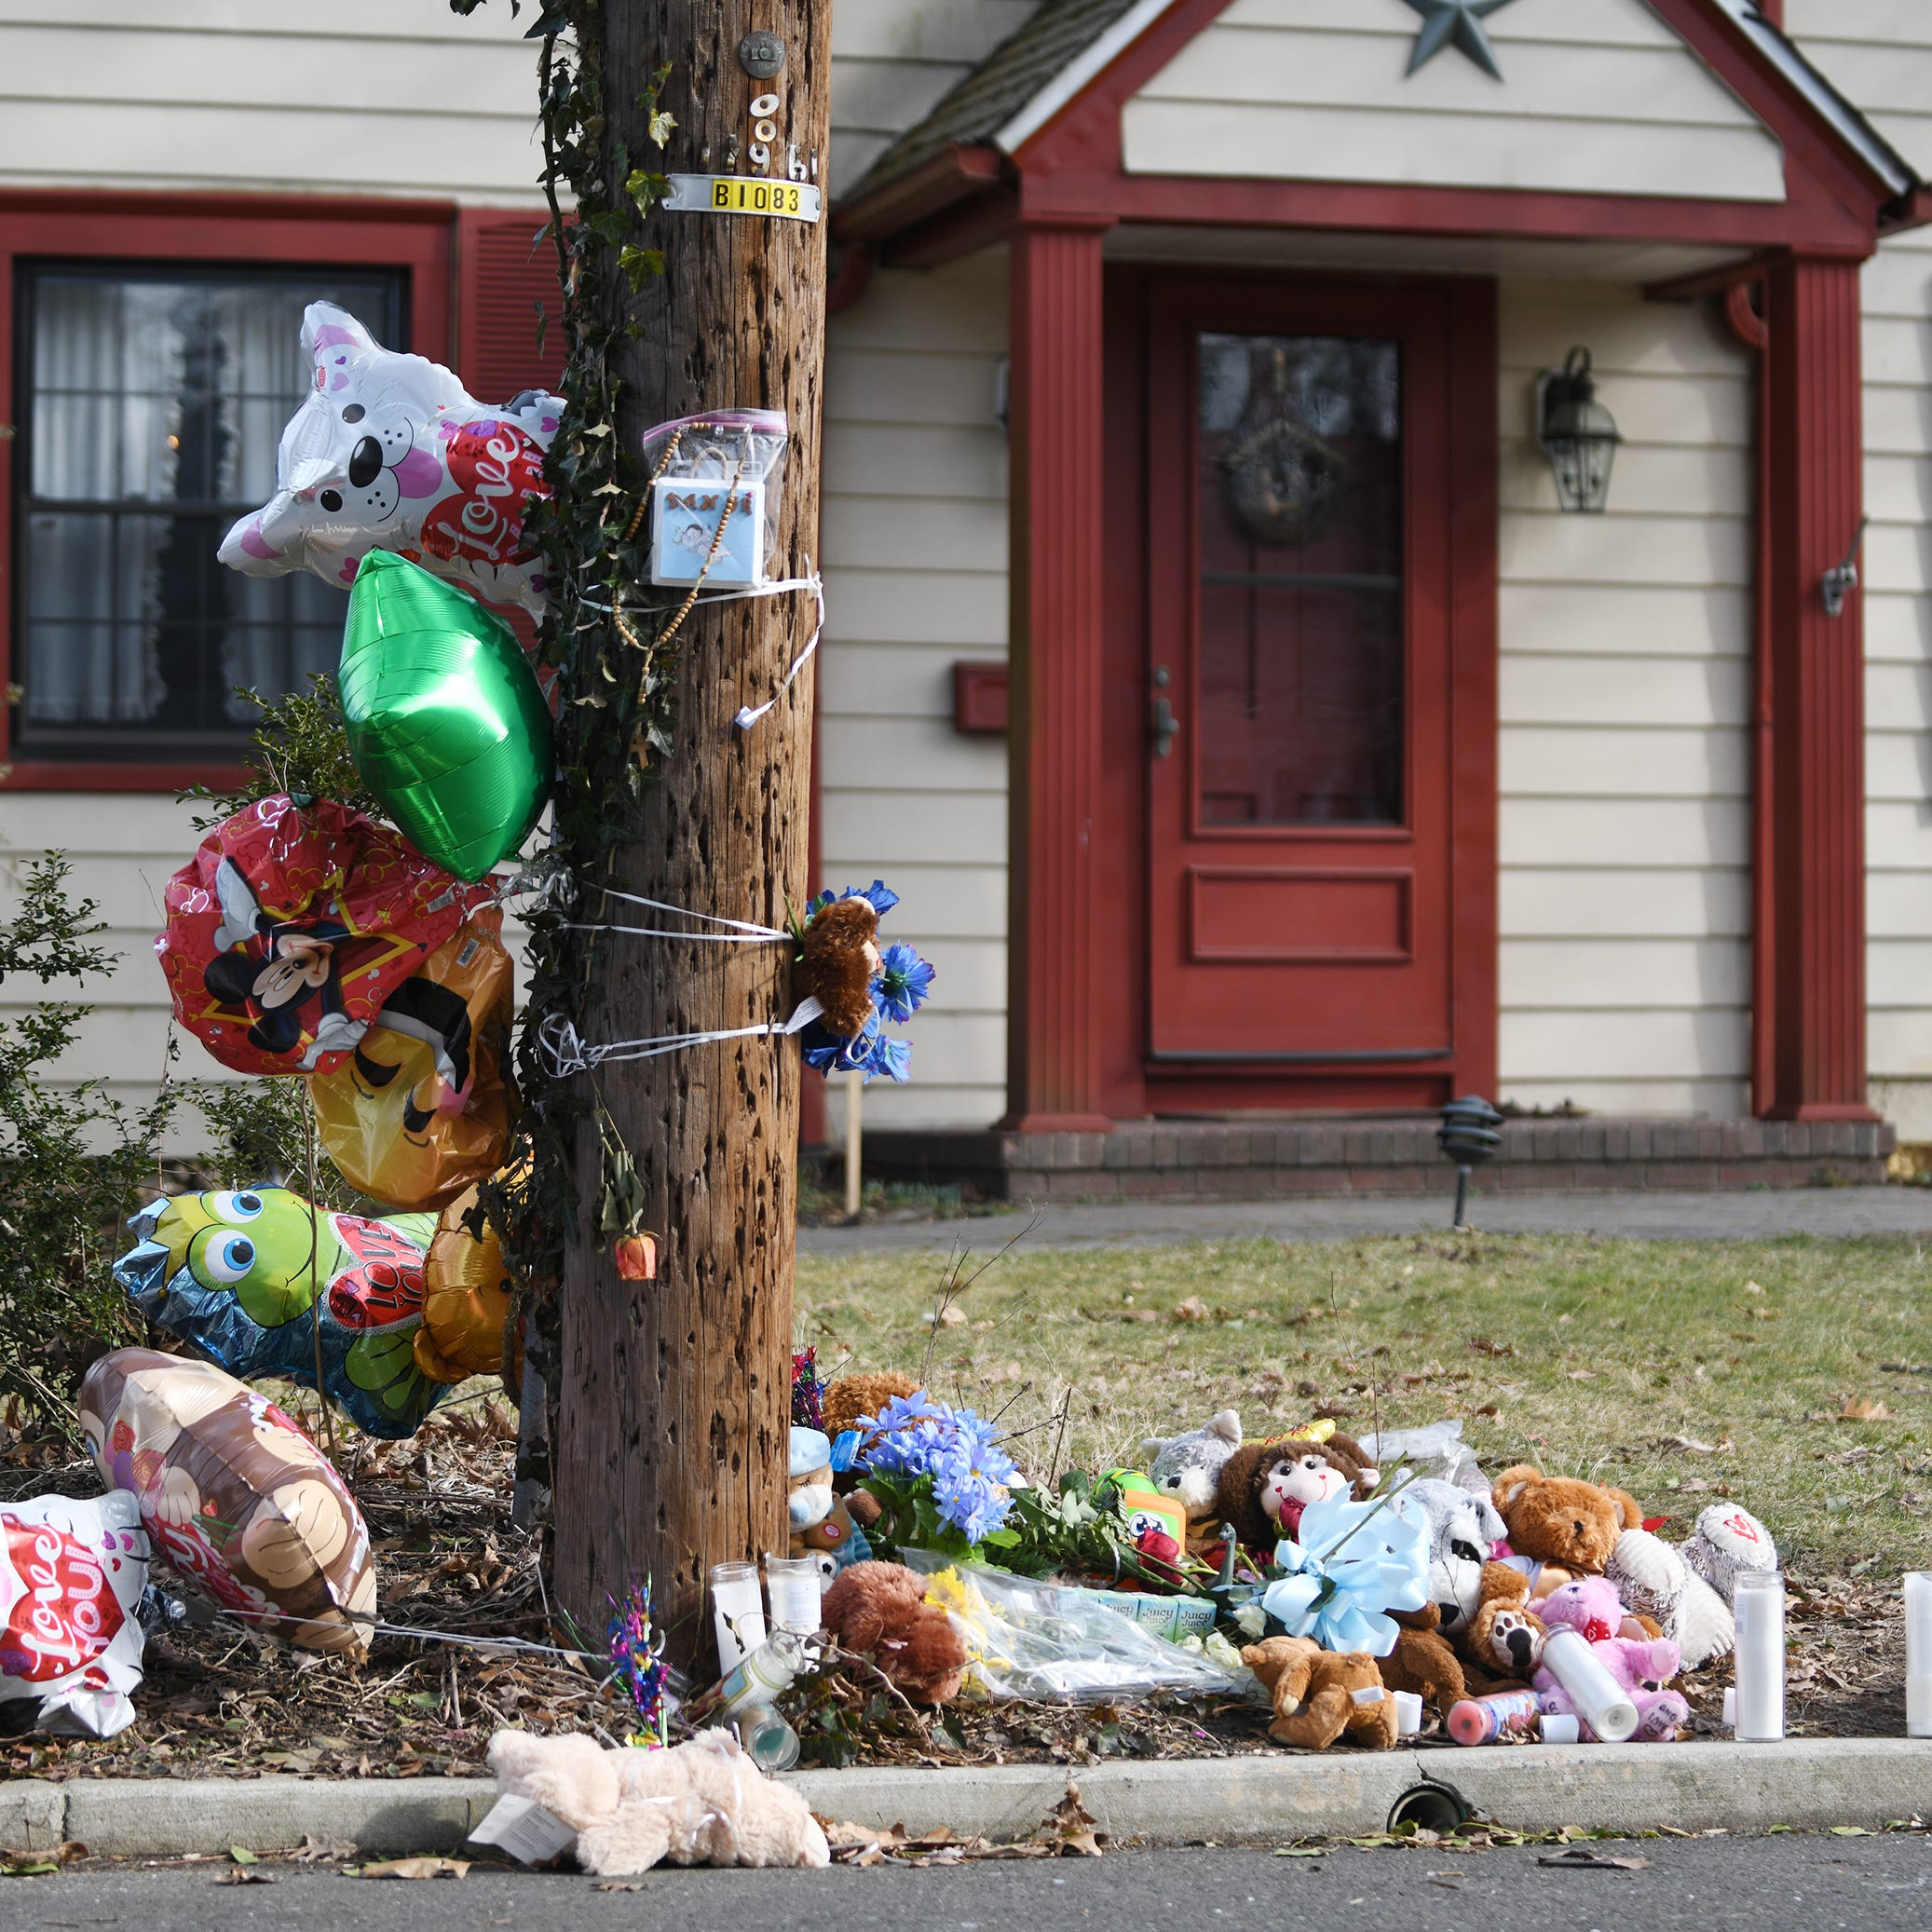 Bridgeton toddler's body was burnt, dismembered, police say